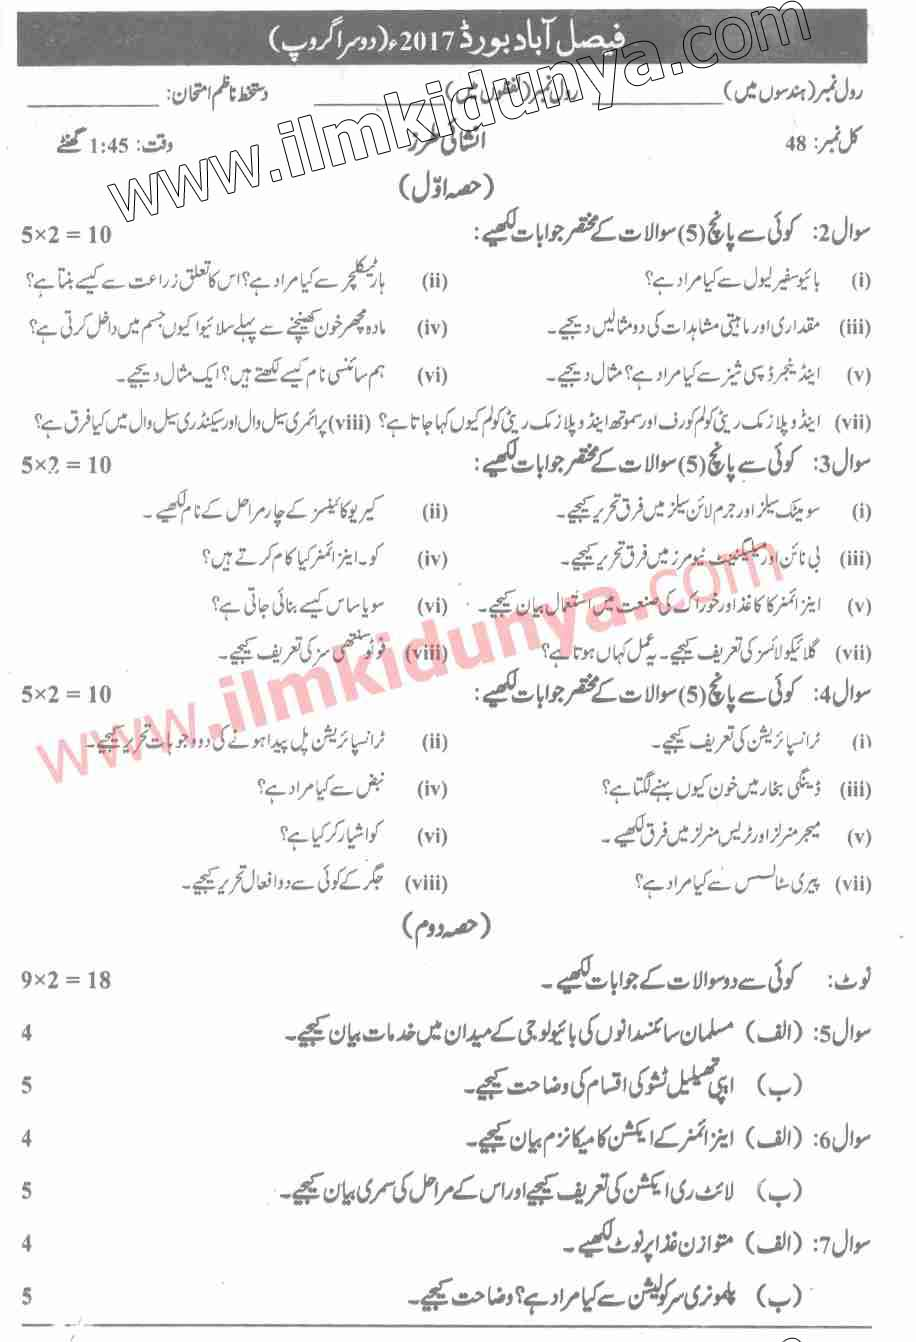 https://pastpapers.ilmkidunya.com/past_papers/Images/2017/10/Large/Past-Papers-2017-Faisalabad-Board-9th-Class-Group-2-Biology-Urdu-Version-Subjective.jpg